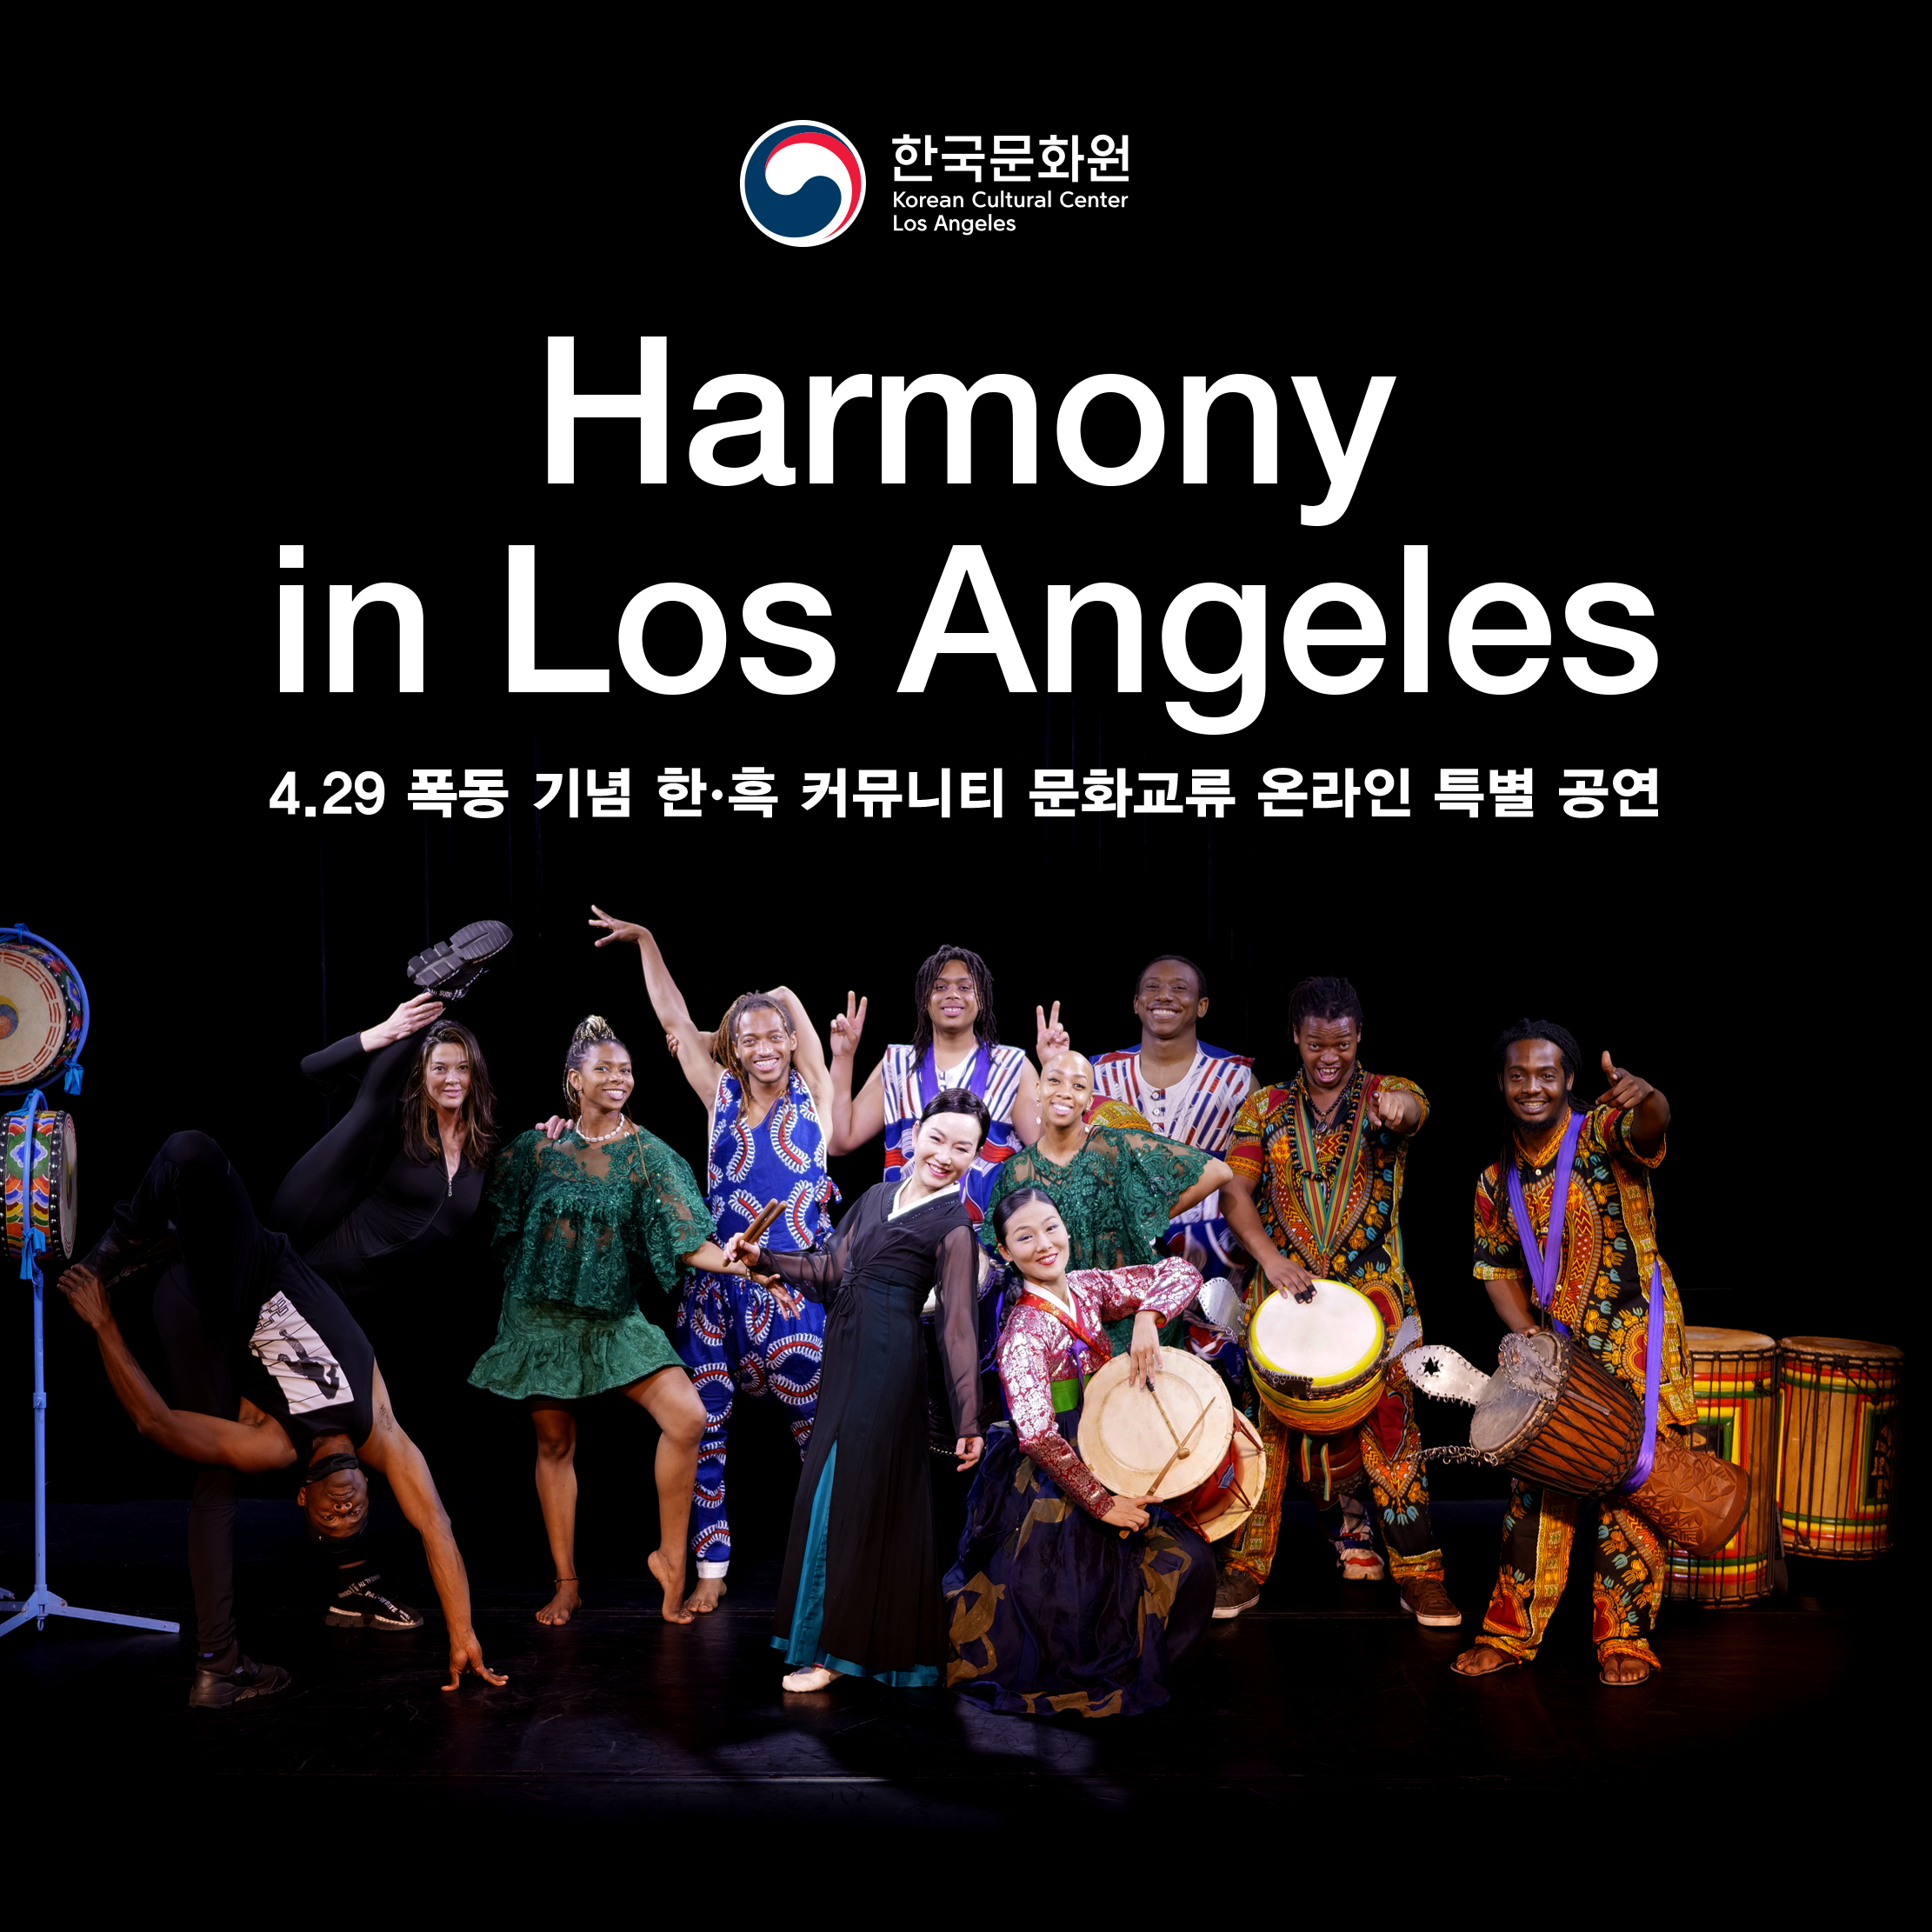 Harmony in Los Angeles